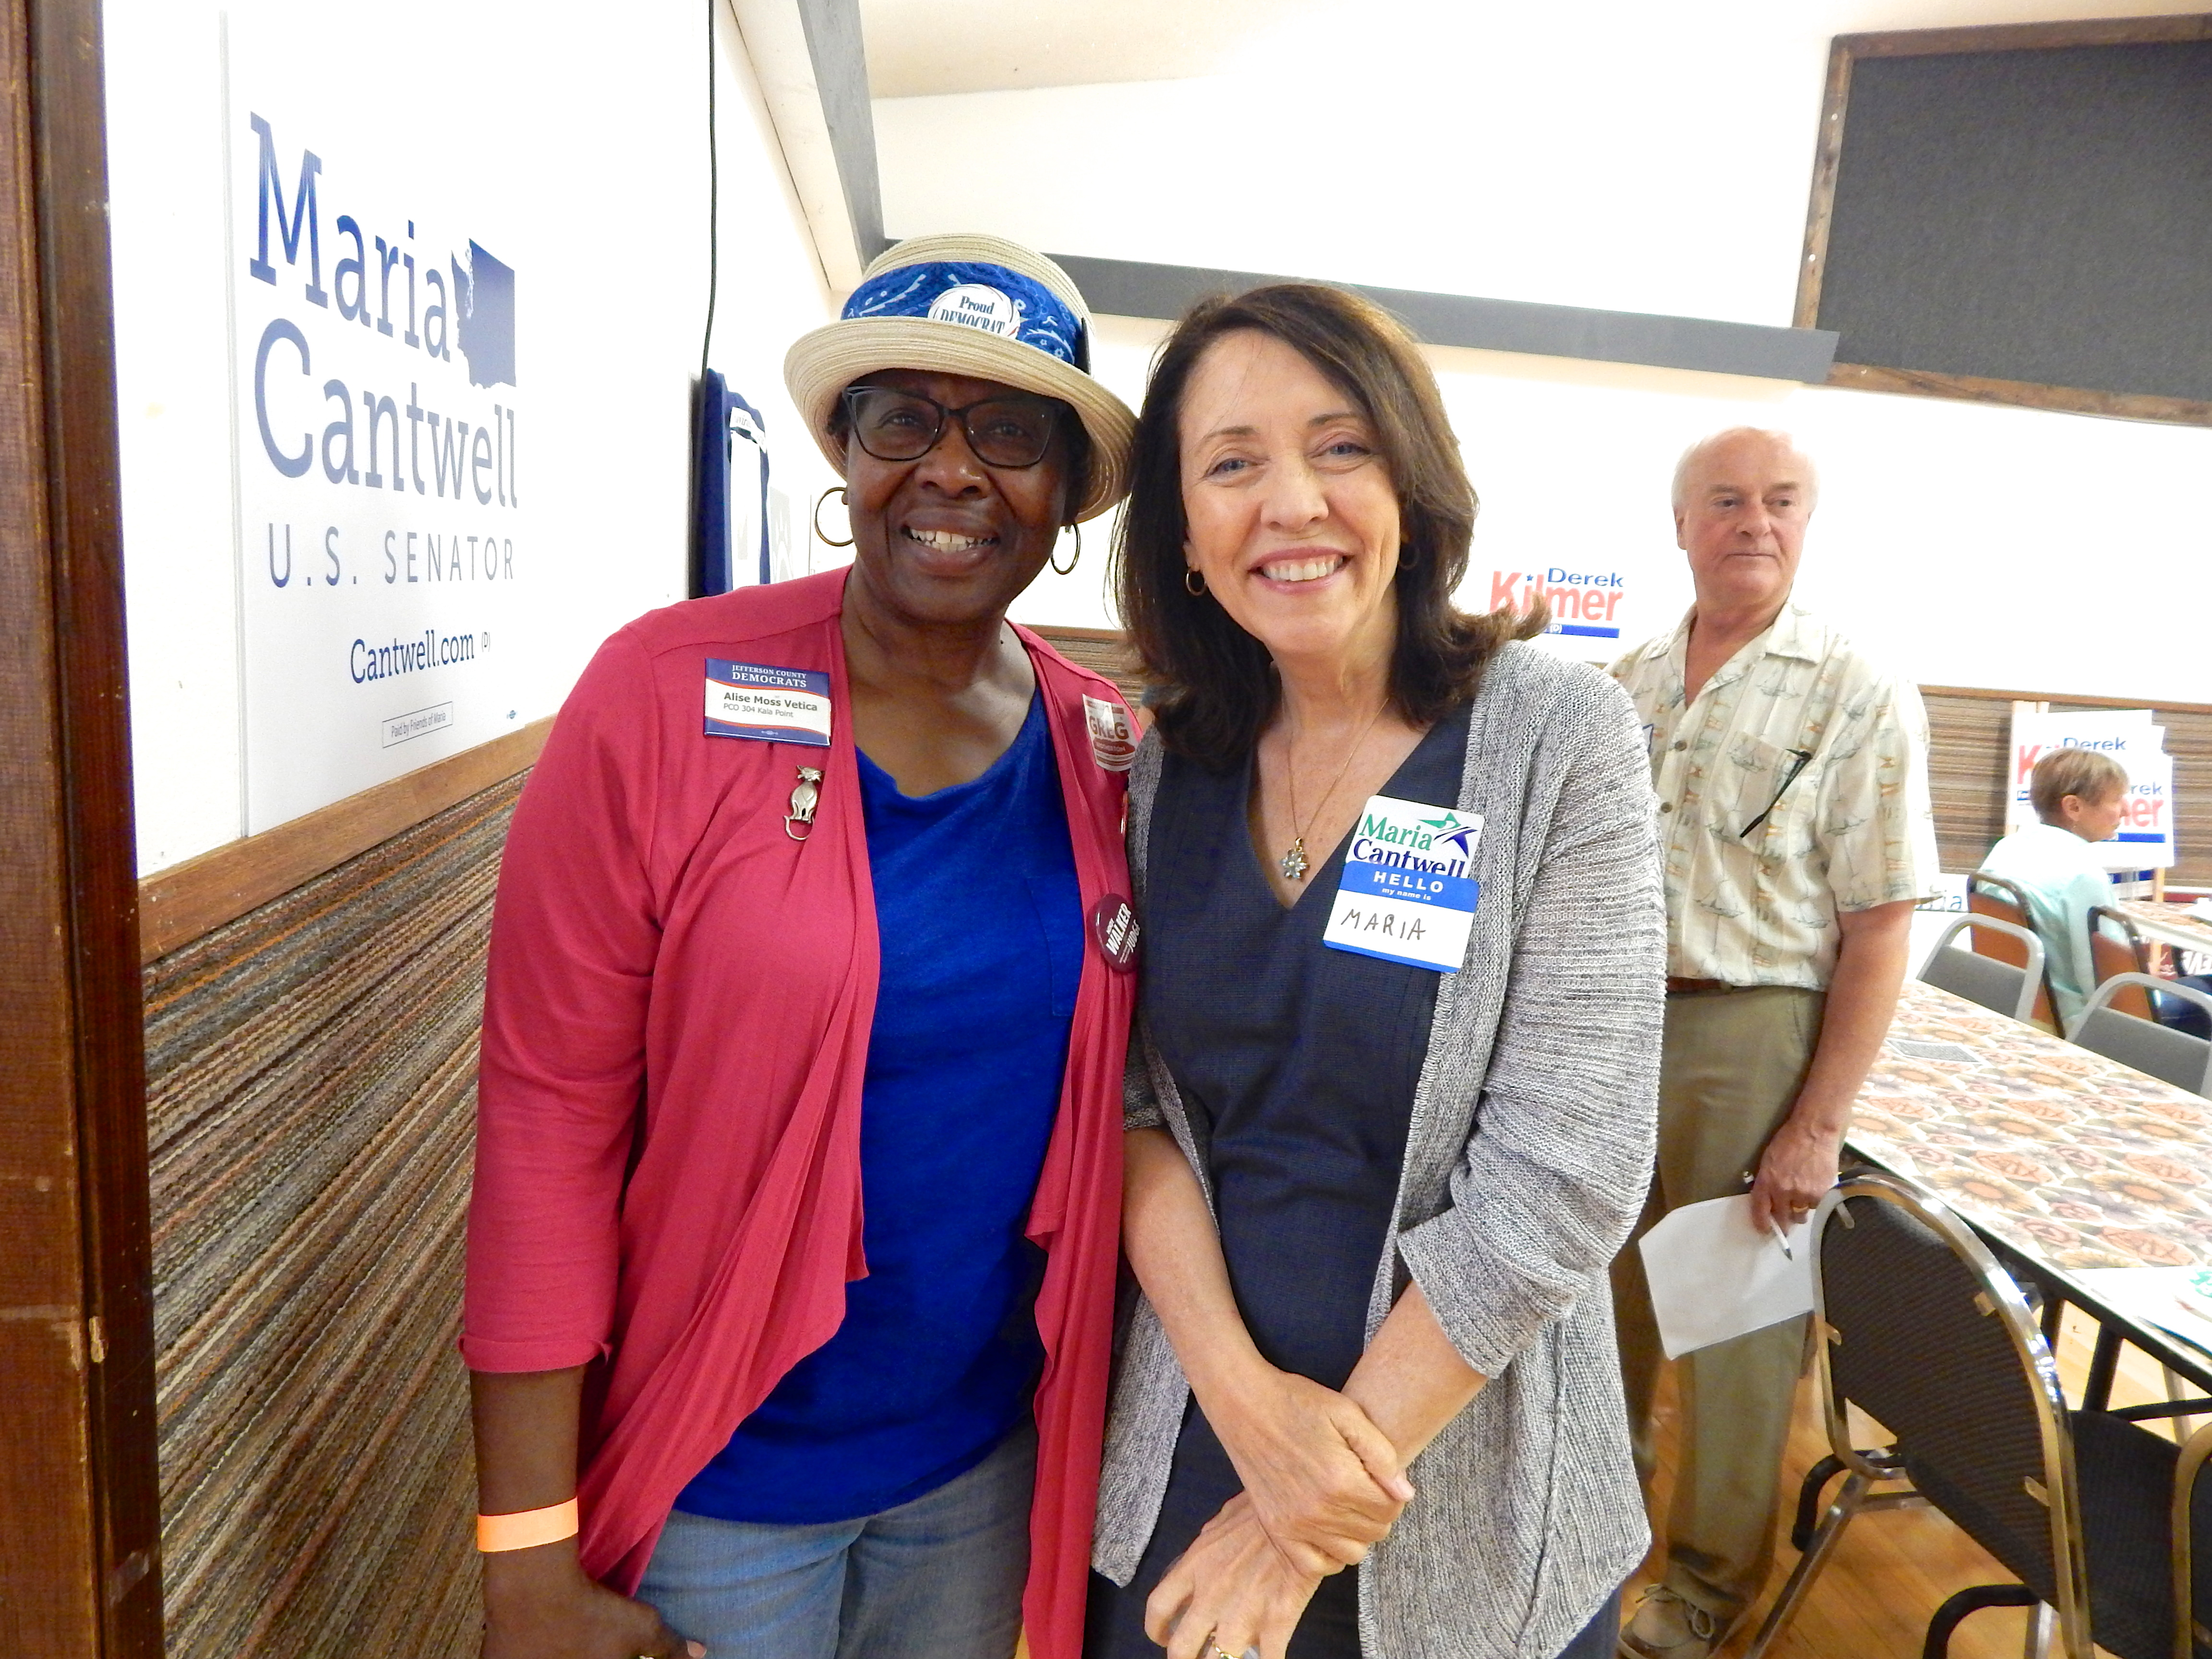 senator cantwell with Alise Moss Vetica